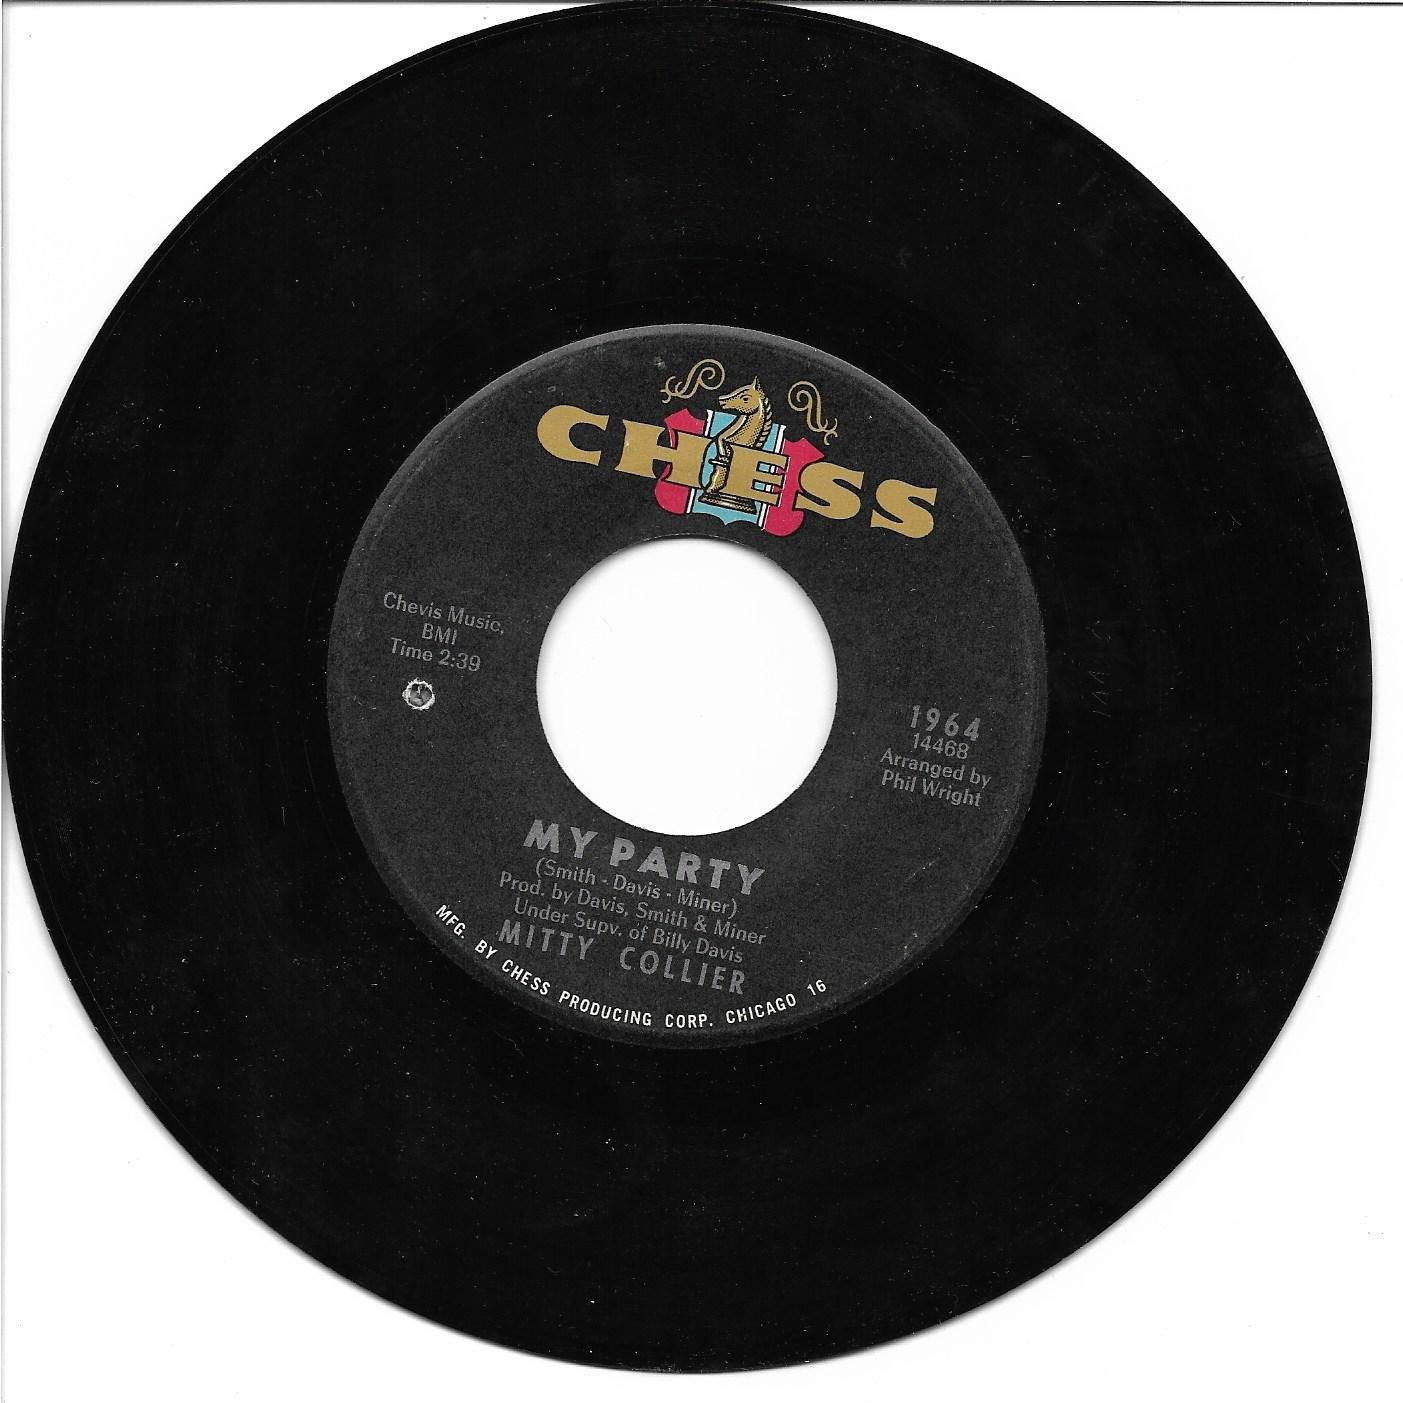 """Mitty Collier: """"My Party"""" / """"I'm Satisfied"""" - her '66 Soul hit - nice - plays NM!"""